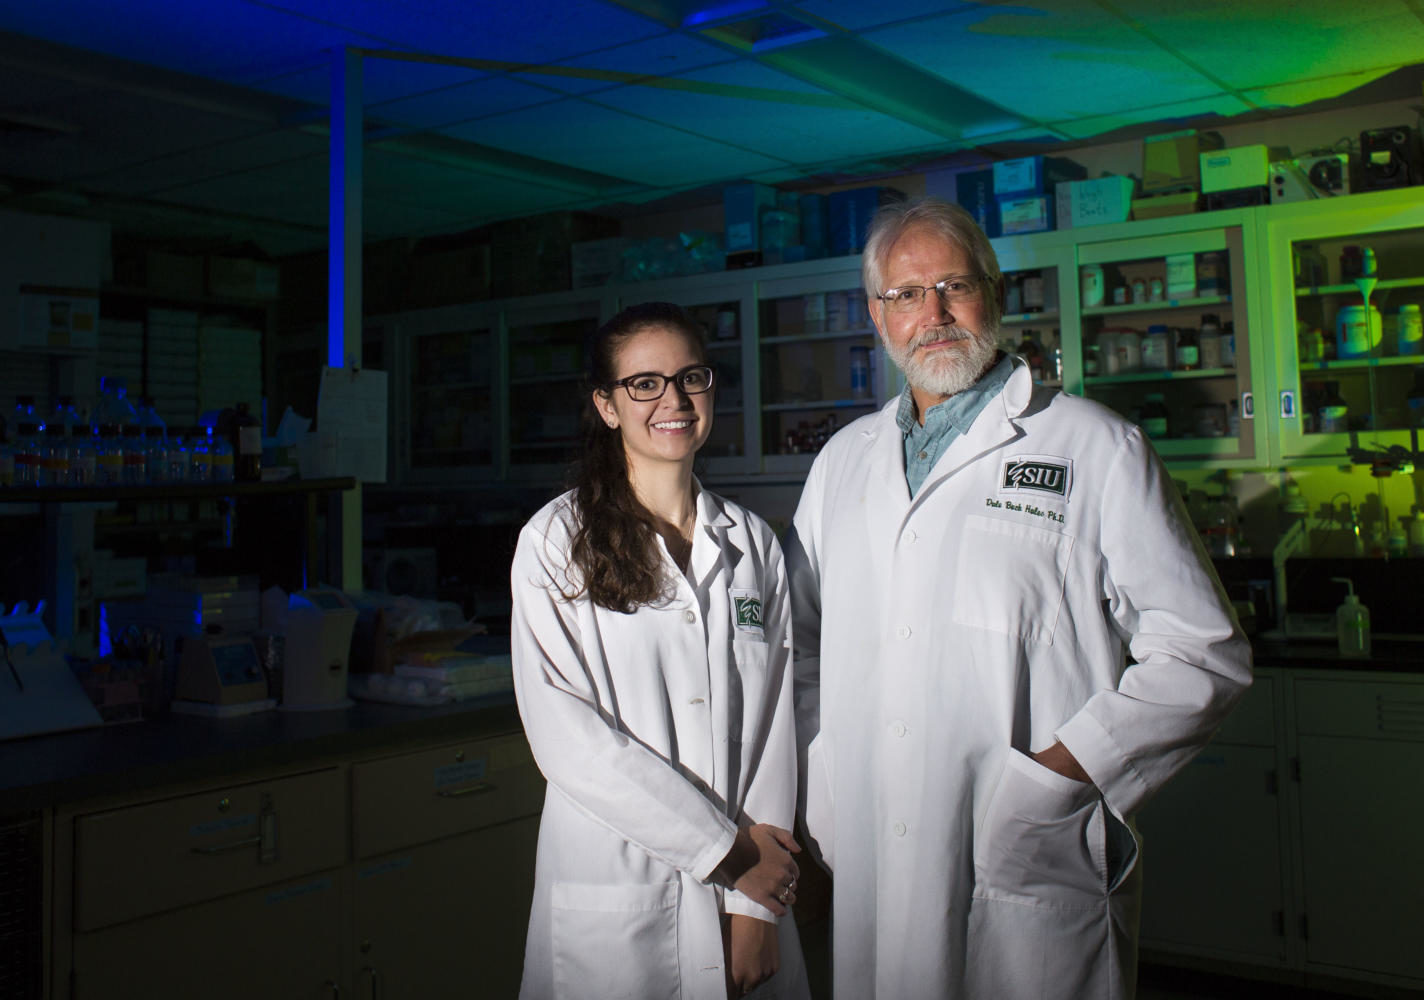 Senior physiology major Kara Starkweather, left, and Professor of Physiology Dr. Buck Hales pose for a photograph in a Life Sciences II lab Friday, Aug. 25, 2017, in Carbondale. The duo is using hens, which ovulate similarly to women, to research flaxseed as a dietary intervention in preventing ovarian cancer.